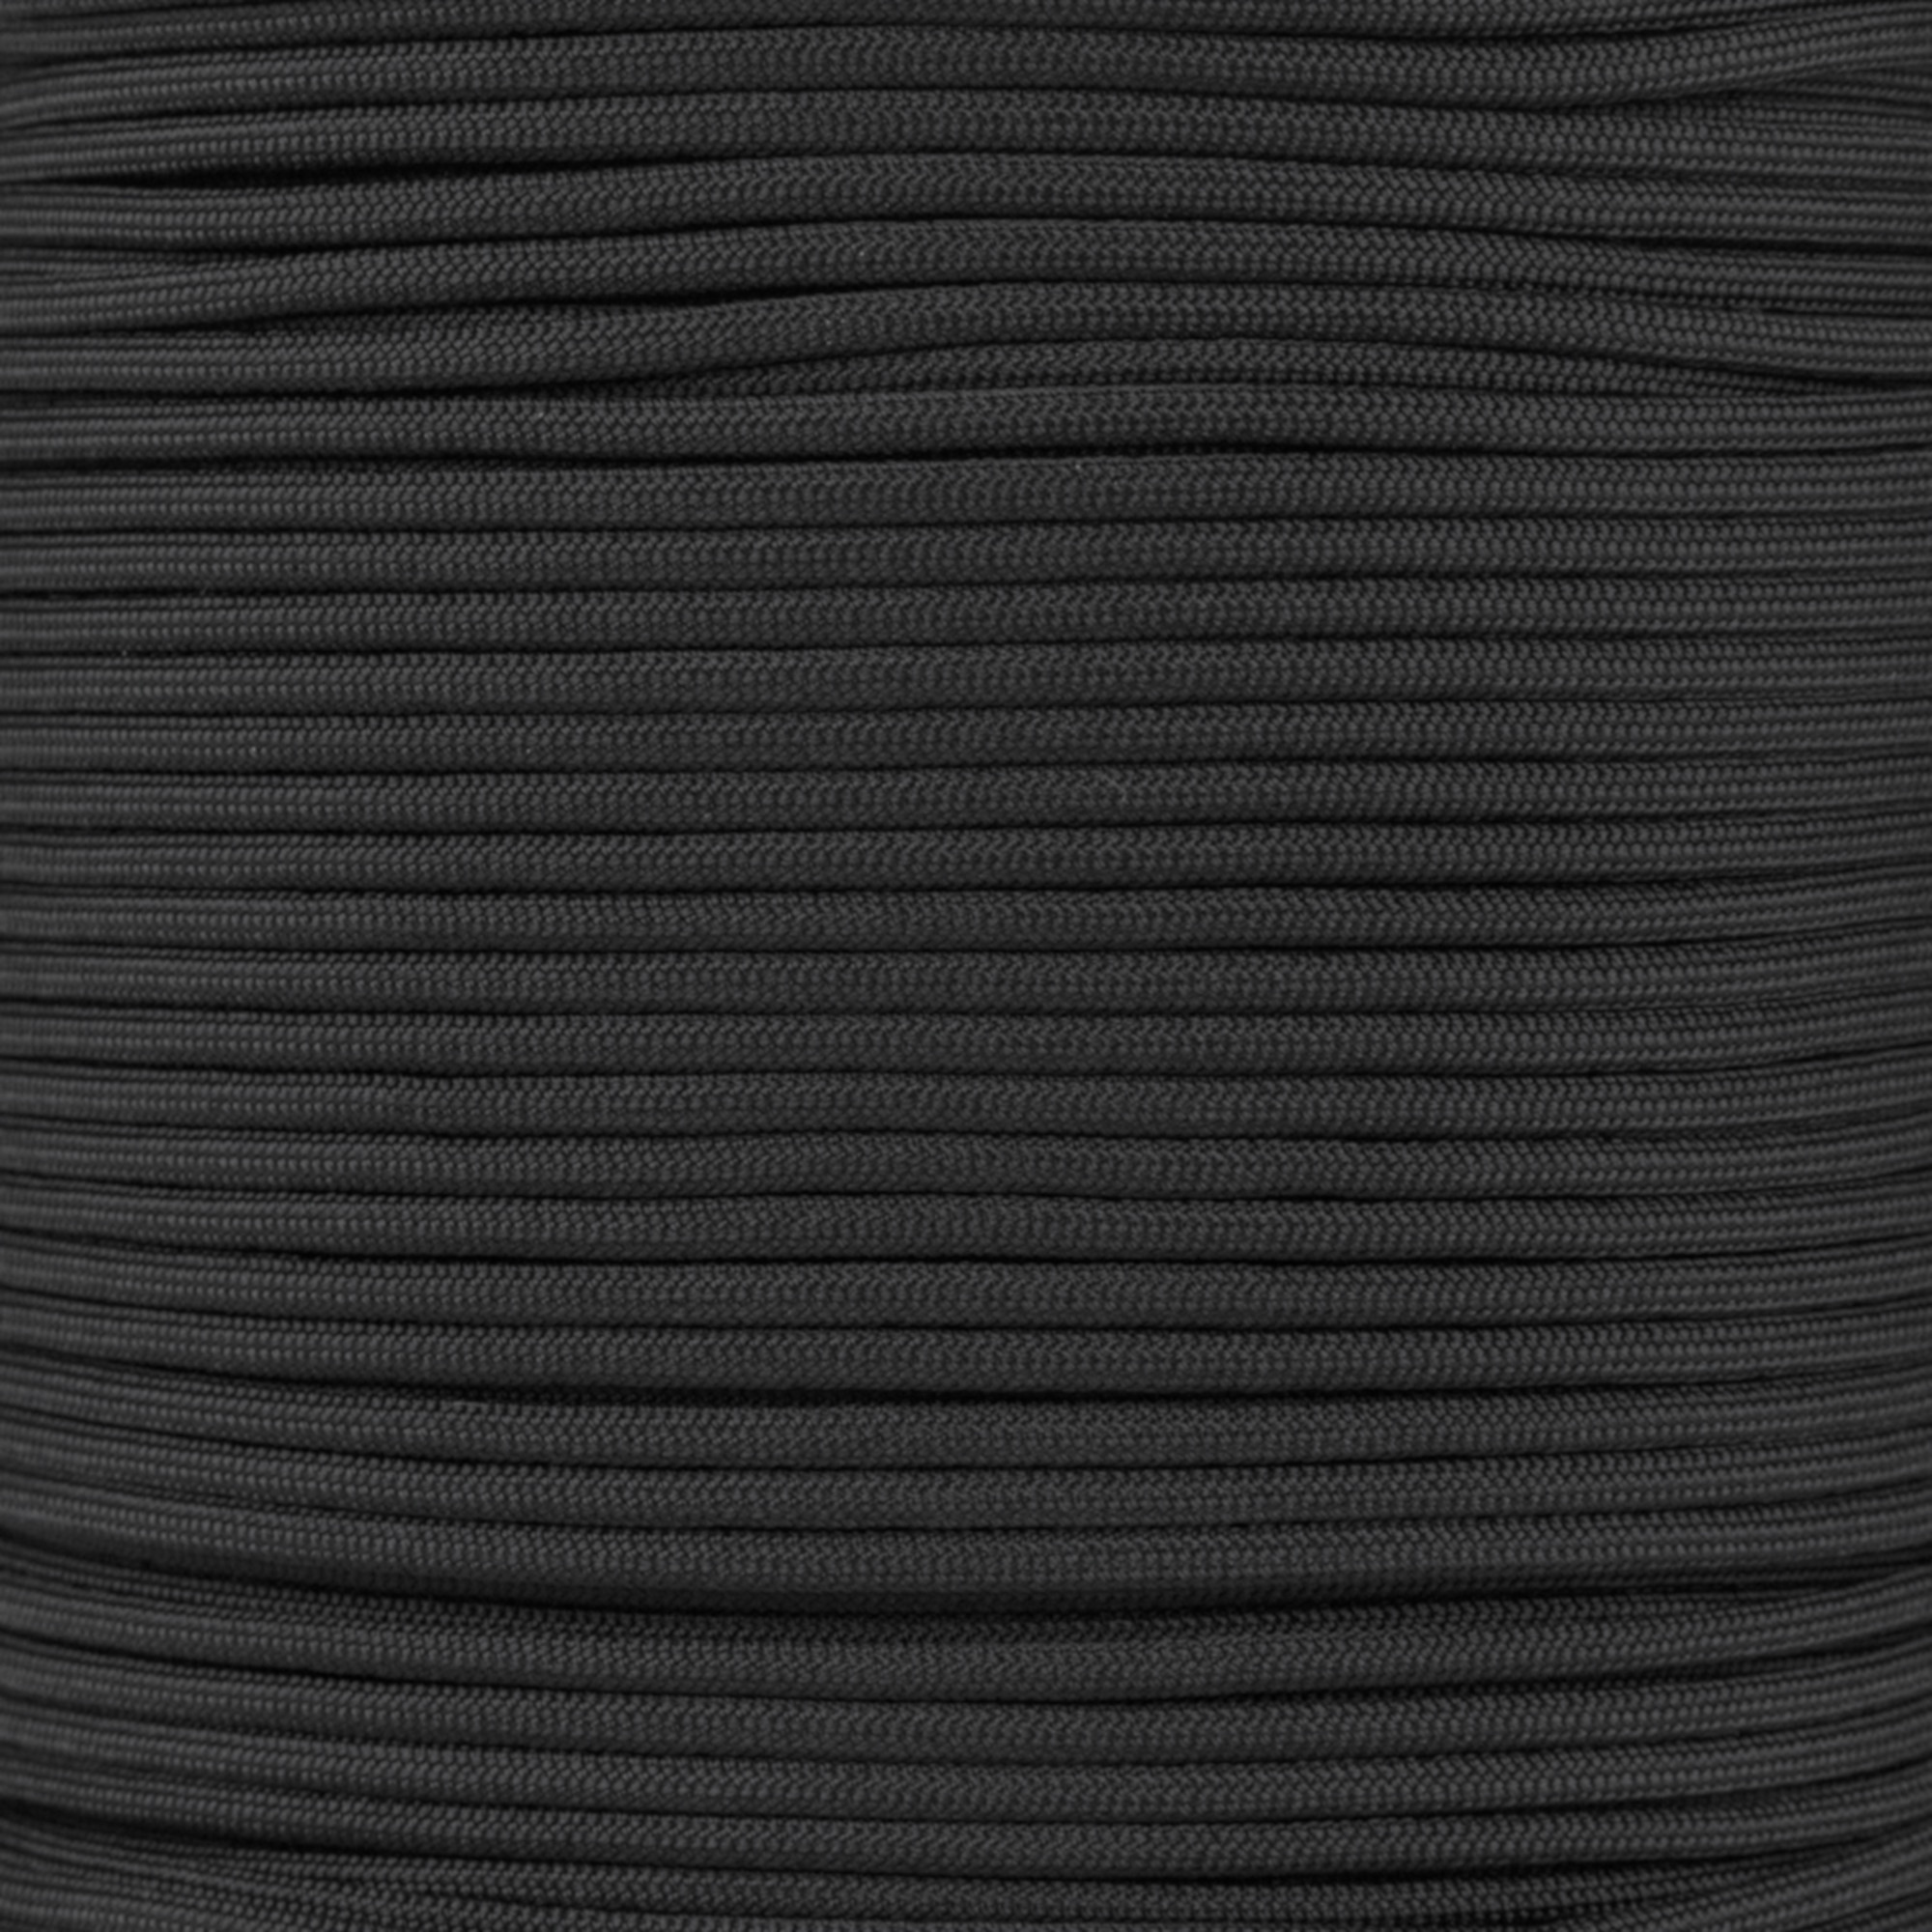 Mil Spec Paracord MIL-C-5040H Type III Built for Survival Titanium Series made with Genuine Authentic 7 Strand 550 LB True 550 Military Specification Strength Nylon Kernmantle Tactical Parachute Cord